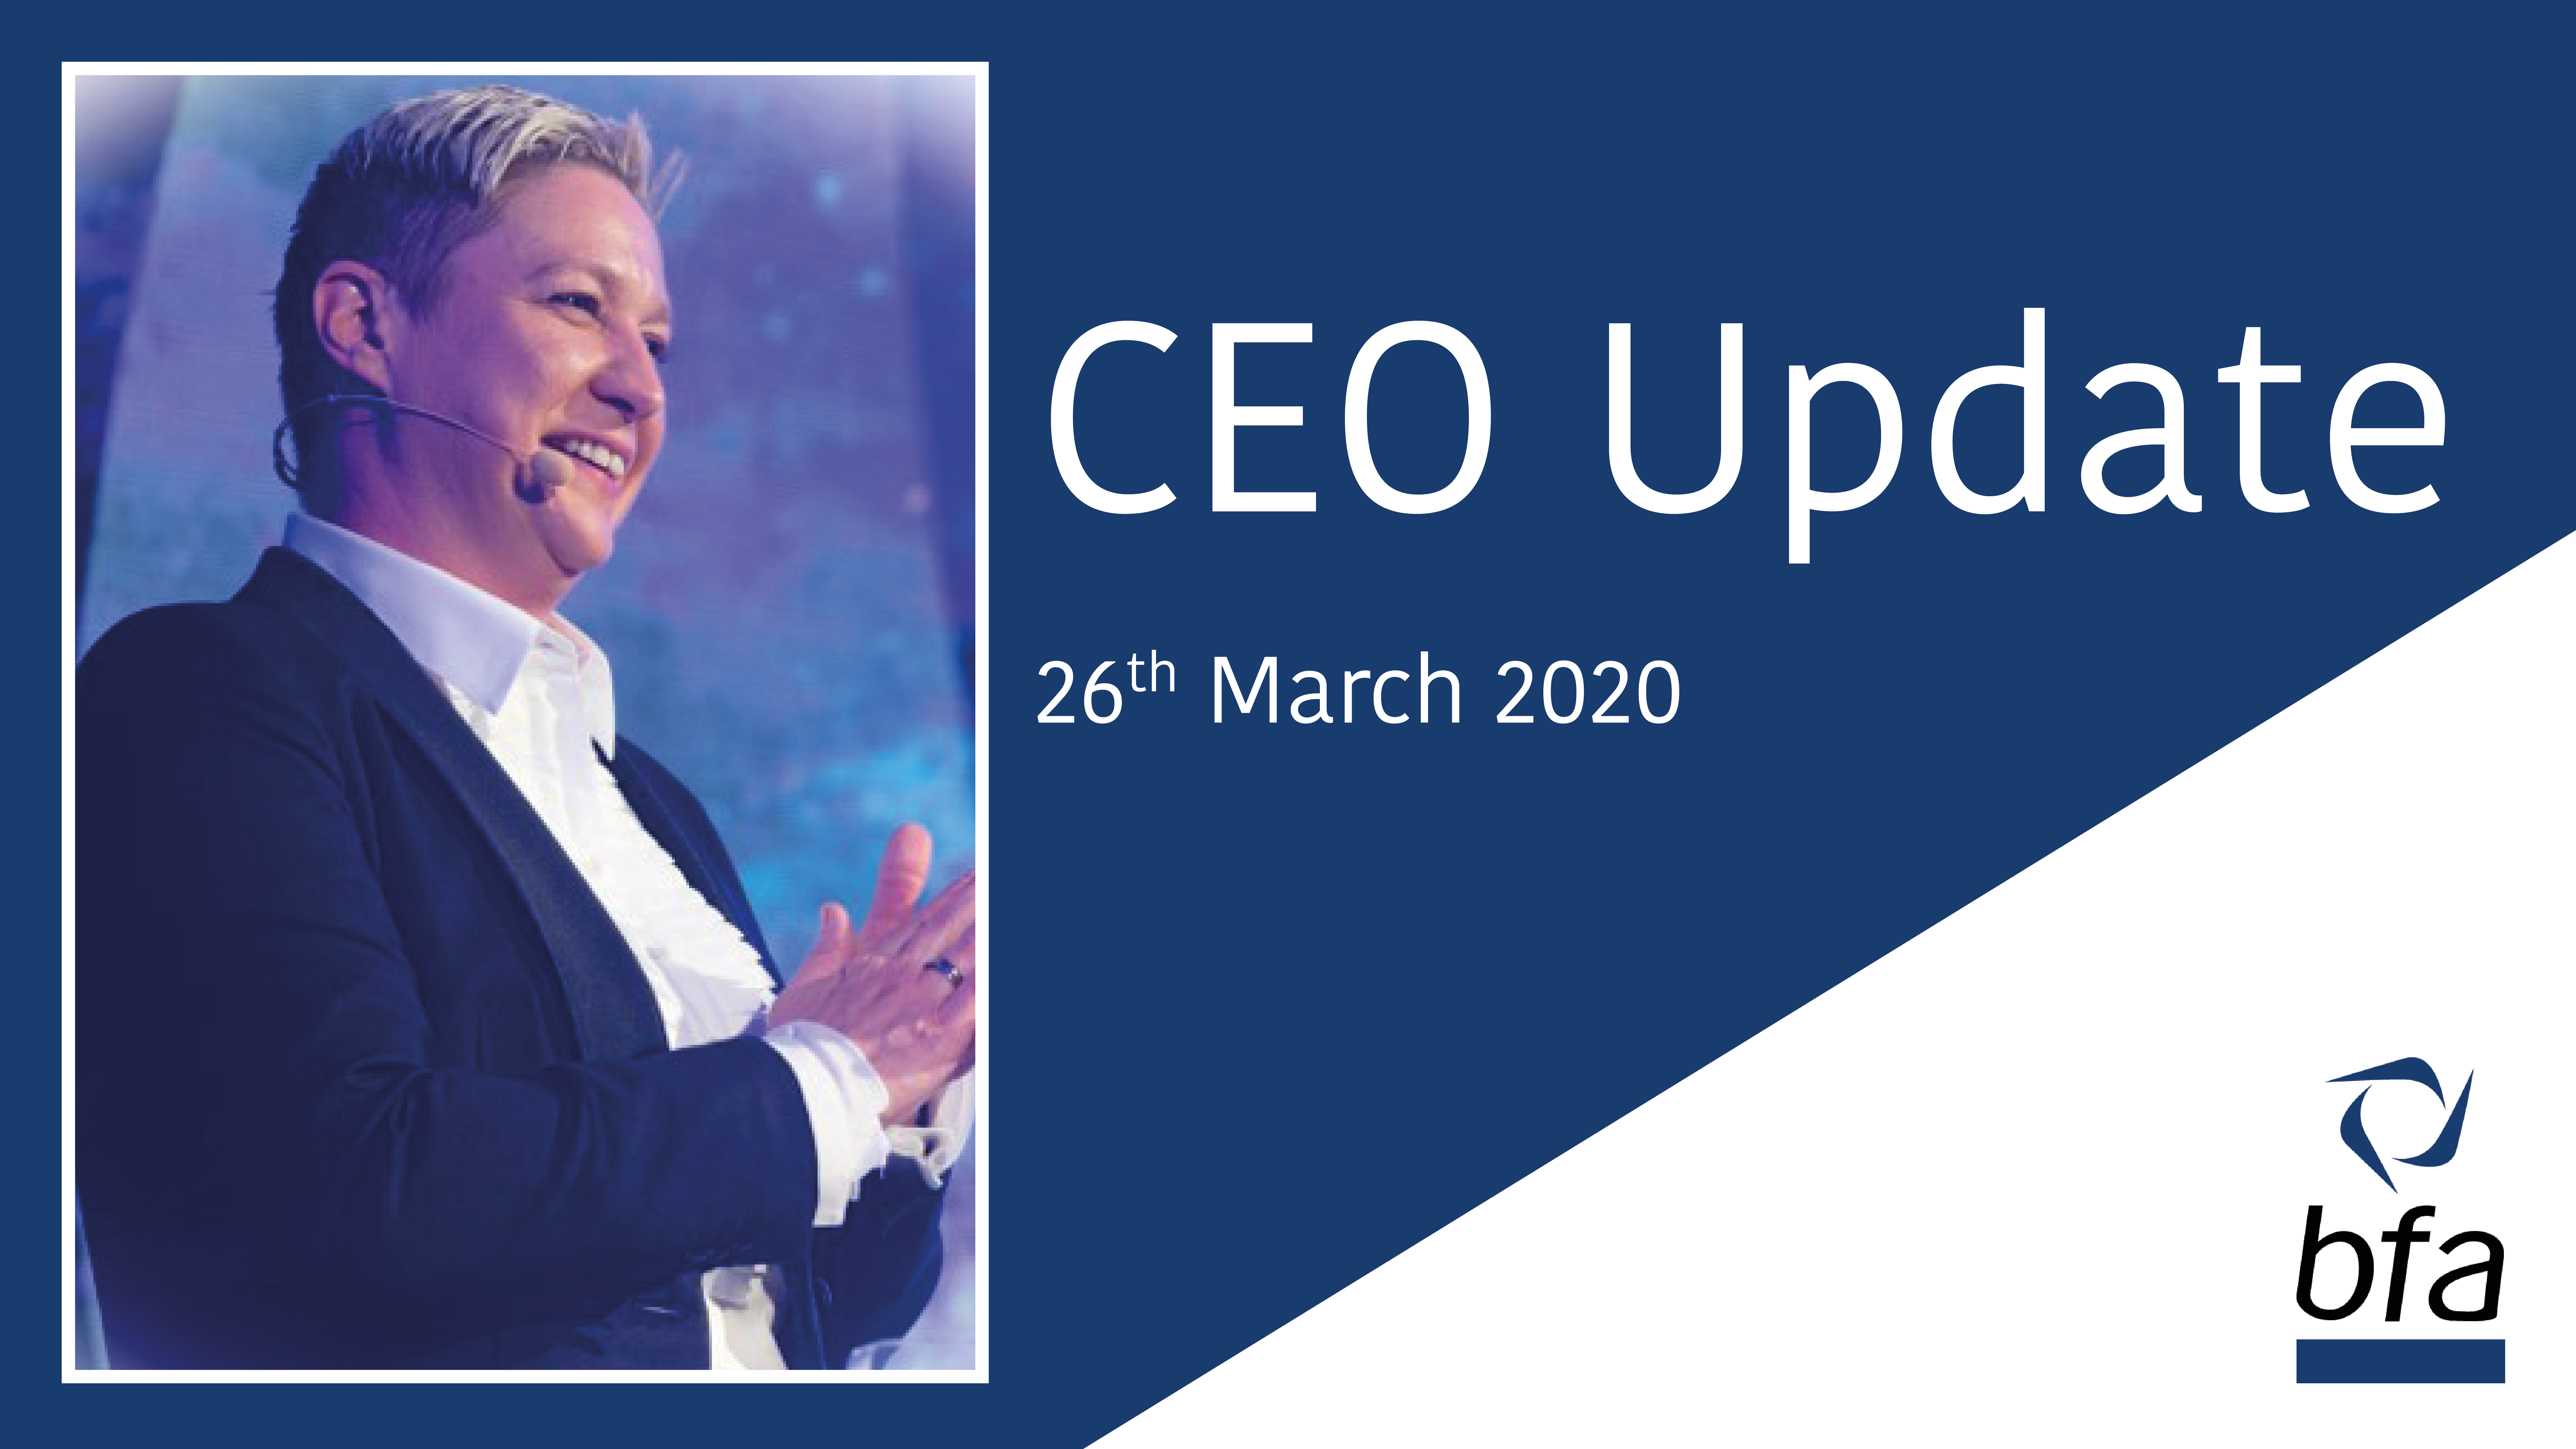 CEO Update: 26th March 2020